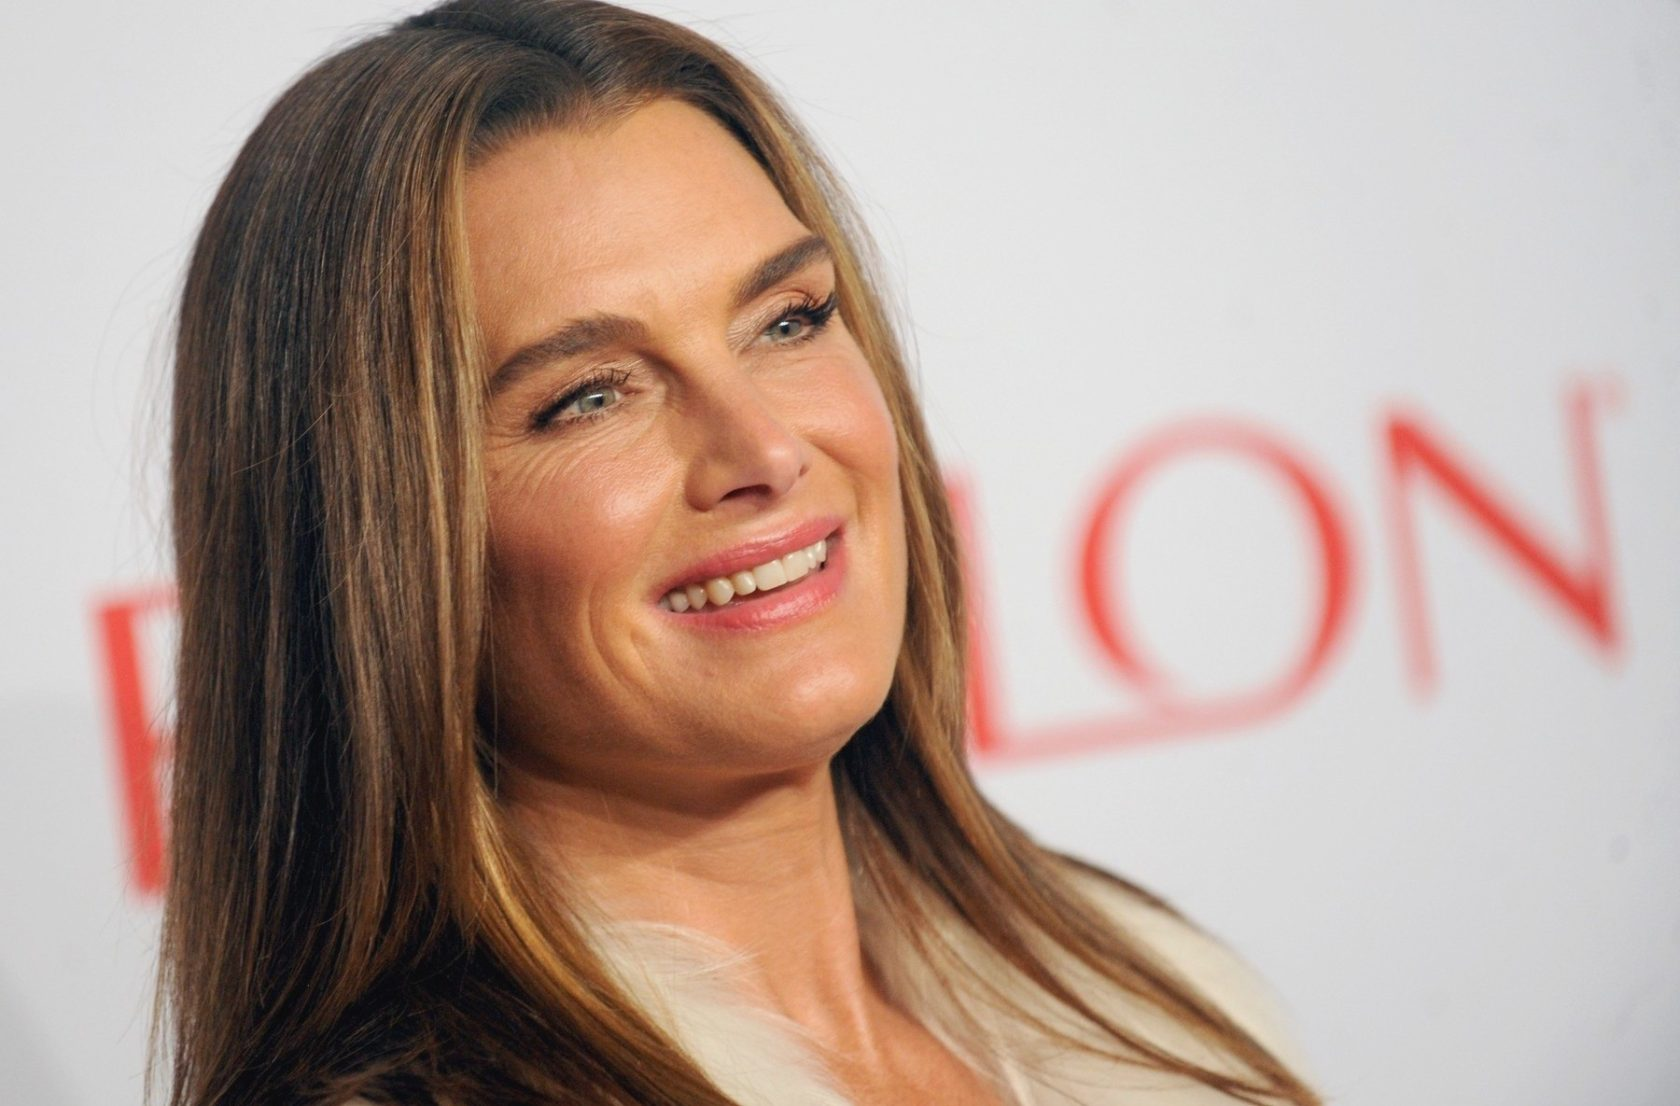 Brooke Shields attends the Elton John AIDS Foundation's 13th Annual An Enduring Vision Benefit at Cipriani Wall Street on October 28, 2014 in New York City., Image: 209394882, License: Rights-managed, Restrictions: WORLD RIGHTS - Fee Payable Upon Reproduction - For queries contact Photoshot - sales@photoshot.com London: +44 (0) 20 7421 6000 Florida: +1 239 689 1883 Berlin: +49 (0) 30 76 212 251, Model Release: no, Credit line: Profimedia, Uppa entertainment